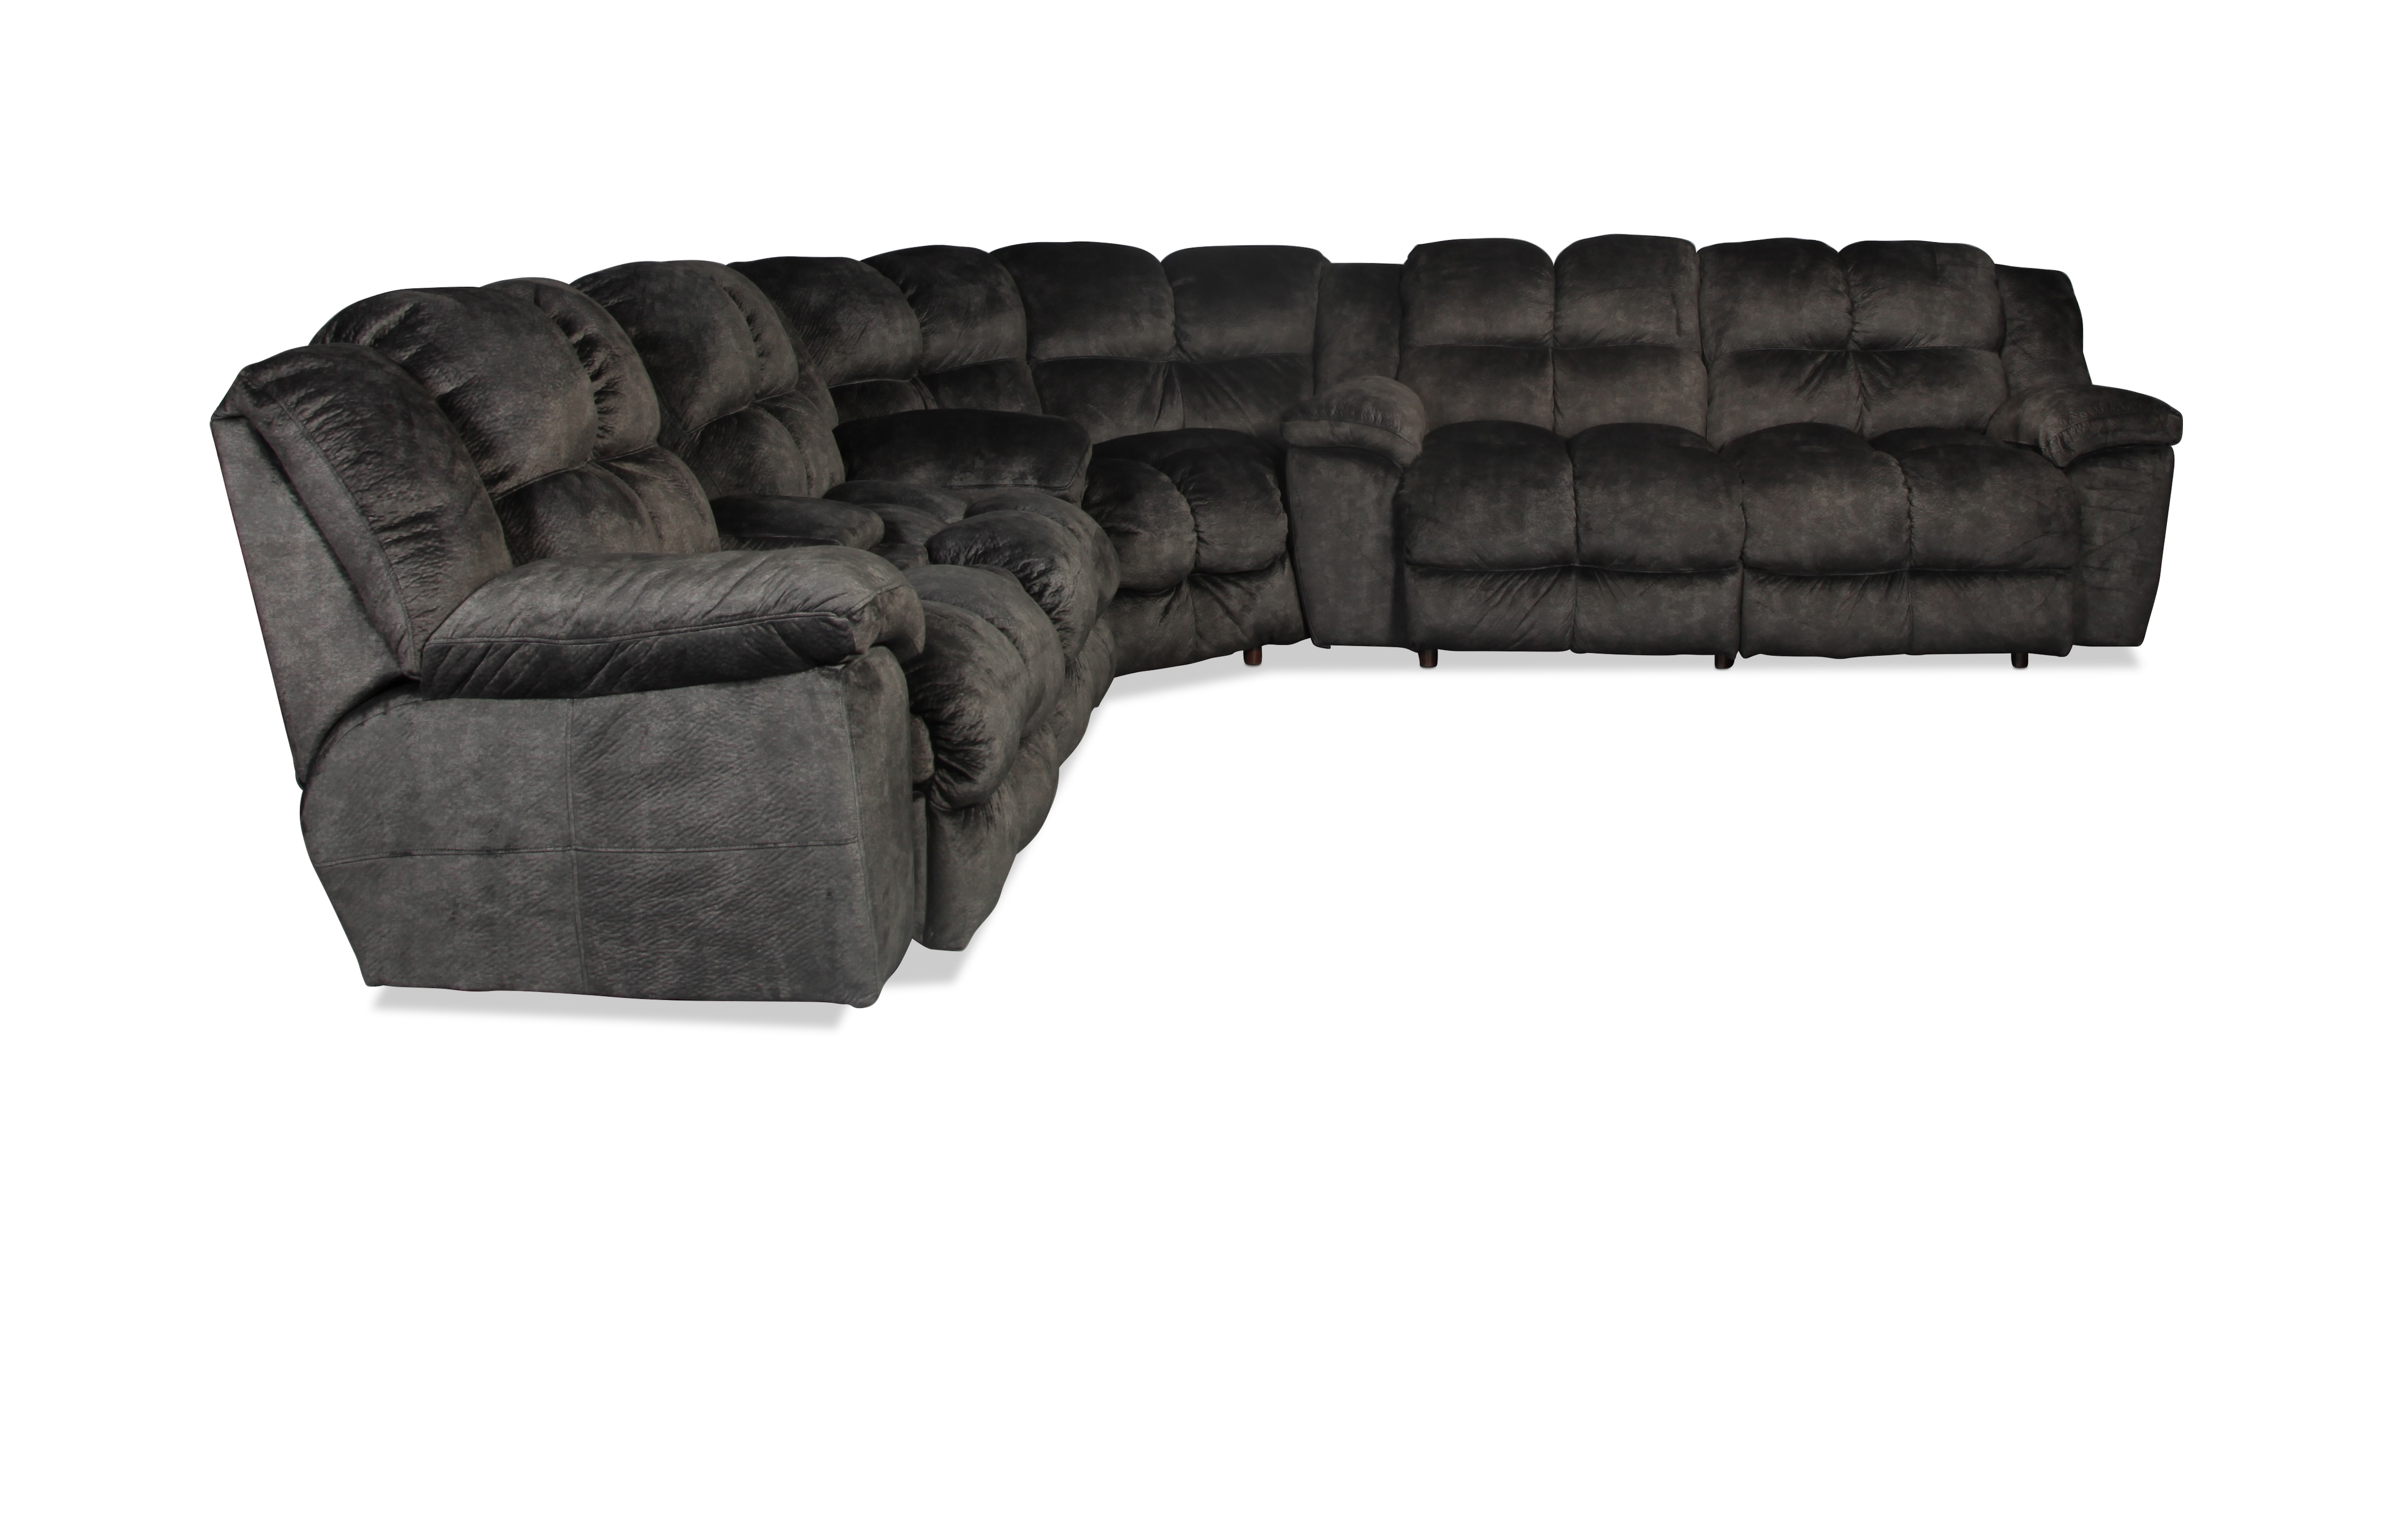 Braylon 3 Piece Sectional - Charcoal